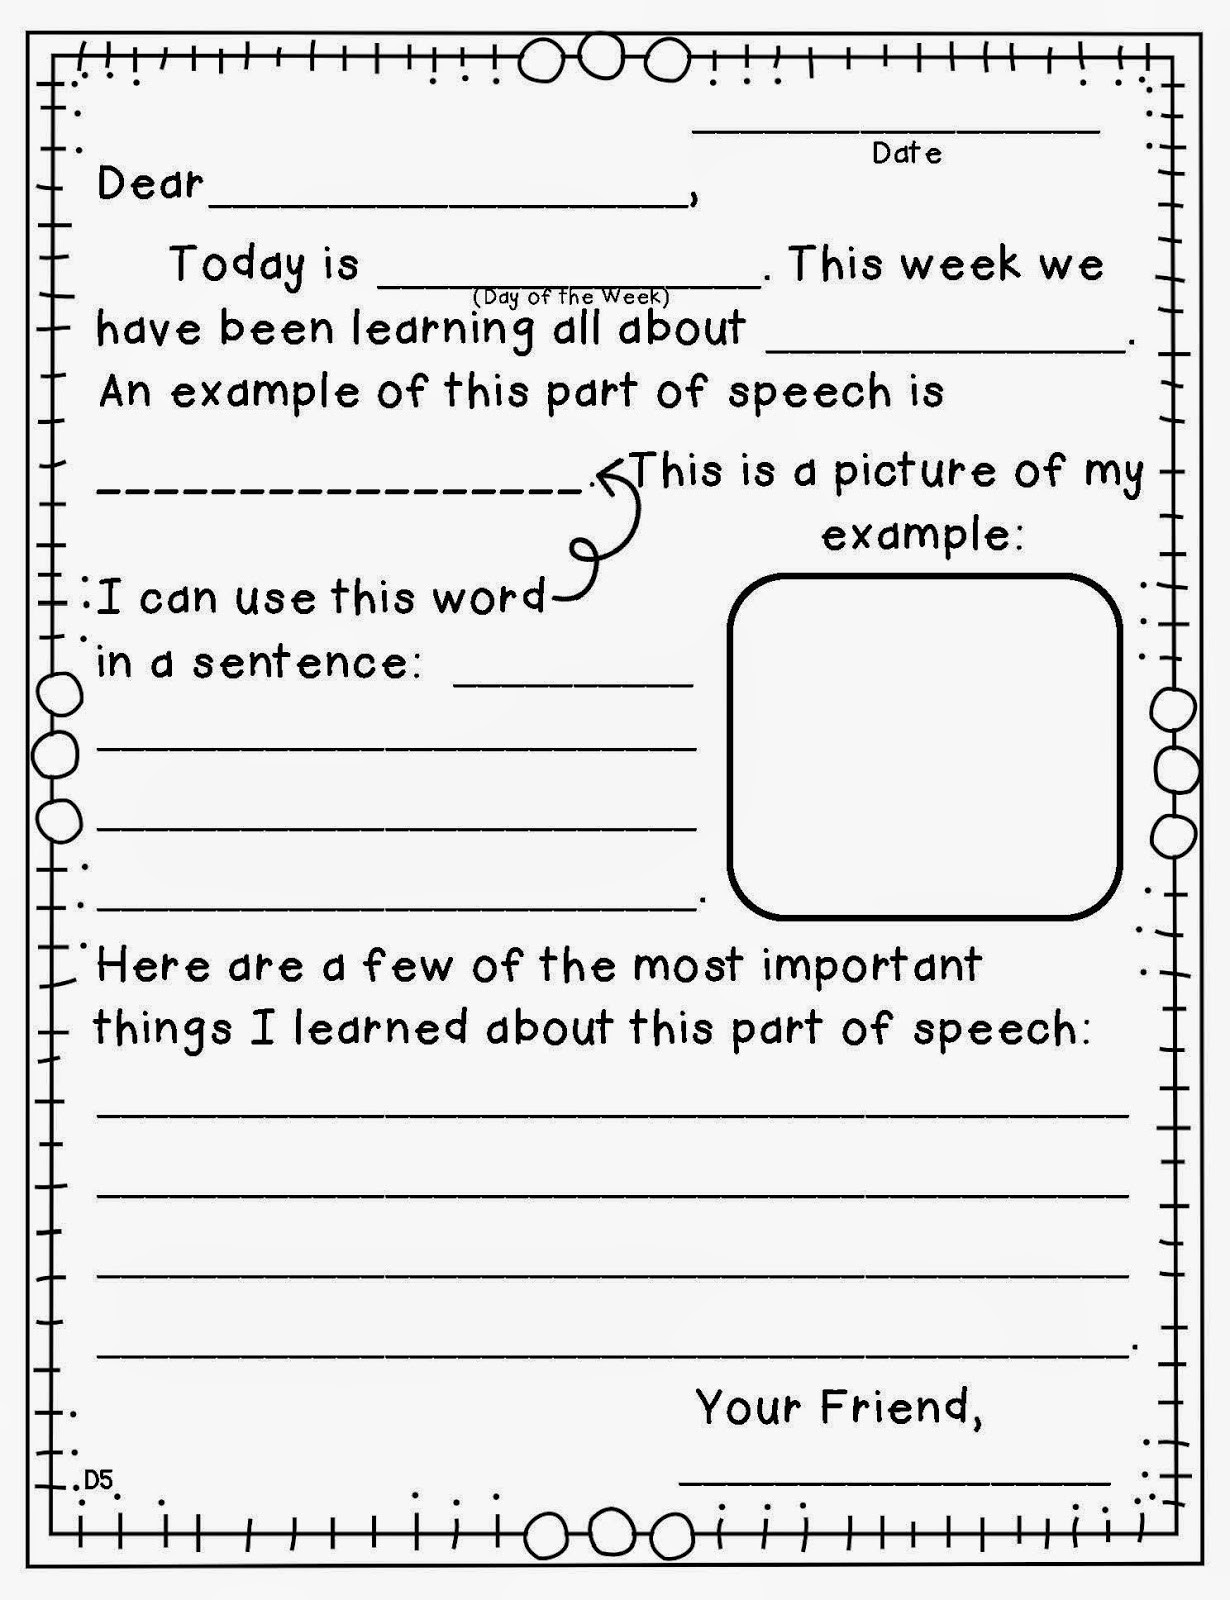 https://www.teacherspayteachers.com/Product/Morning-Message-Adjective-Edition-1708058